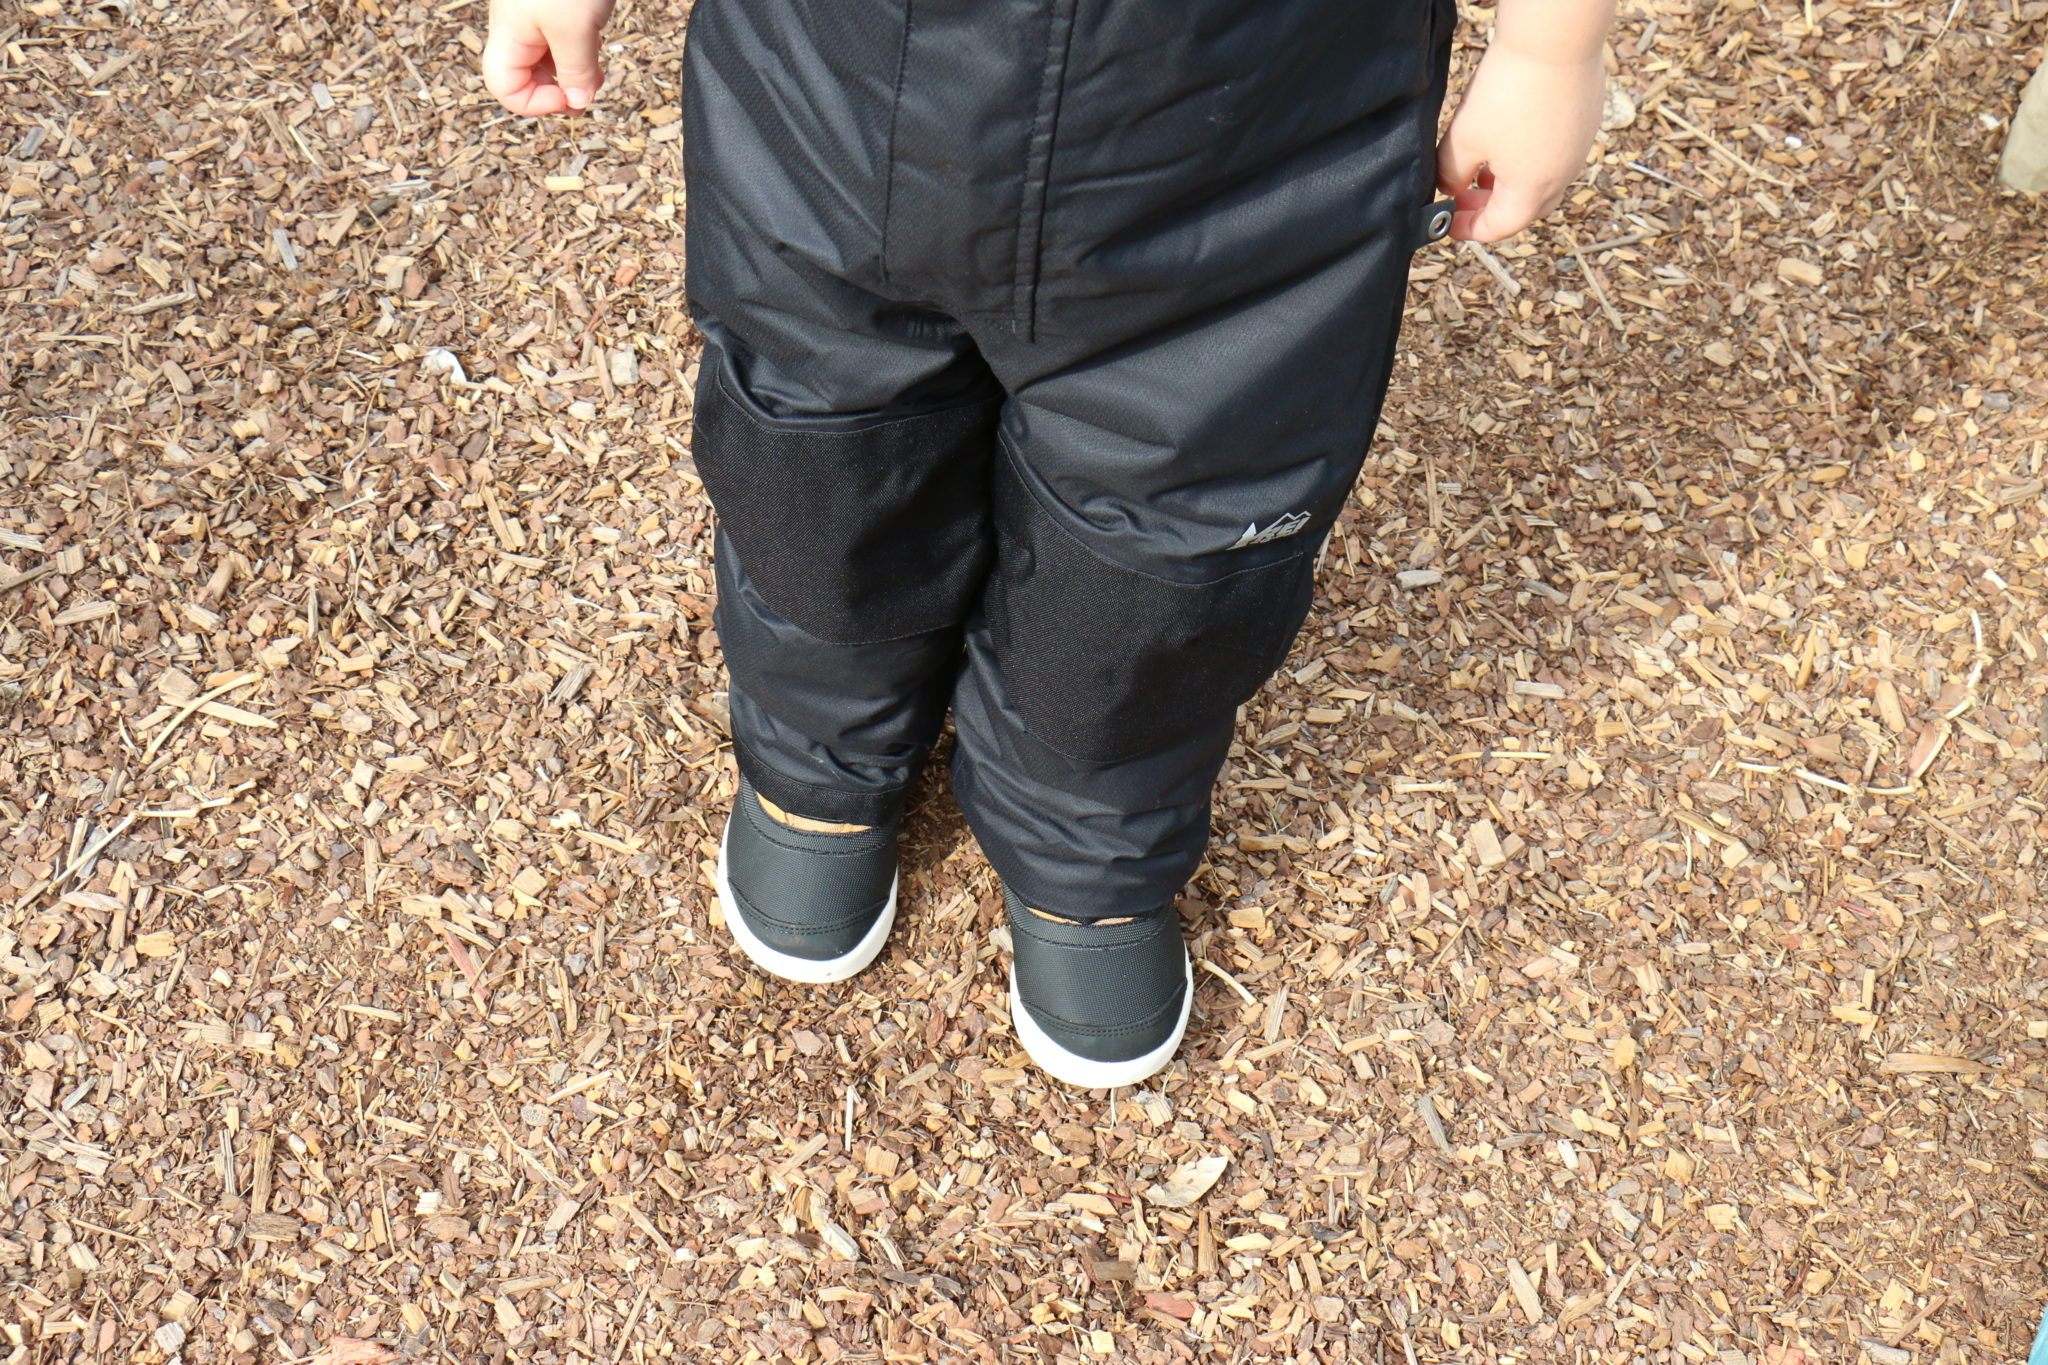 REI Co-op Timber Mountain Overalls - well constructed with reinforced knees and rear.